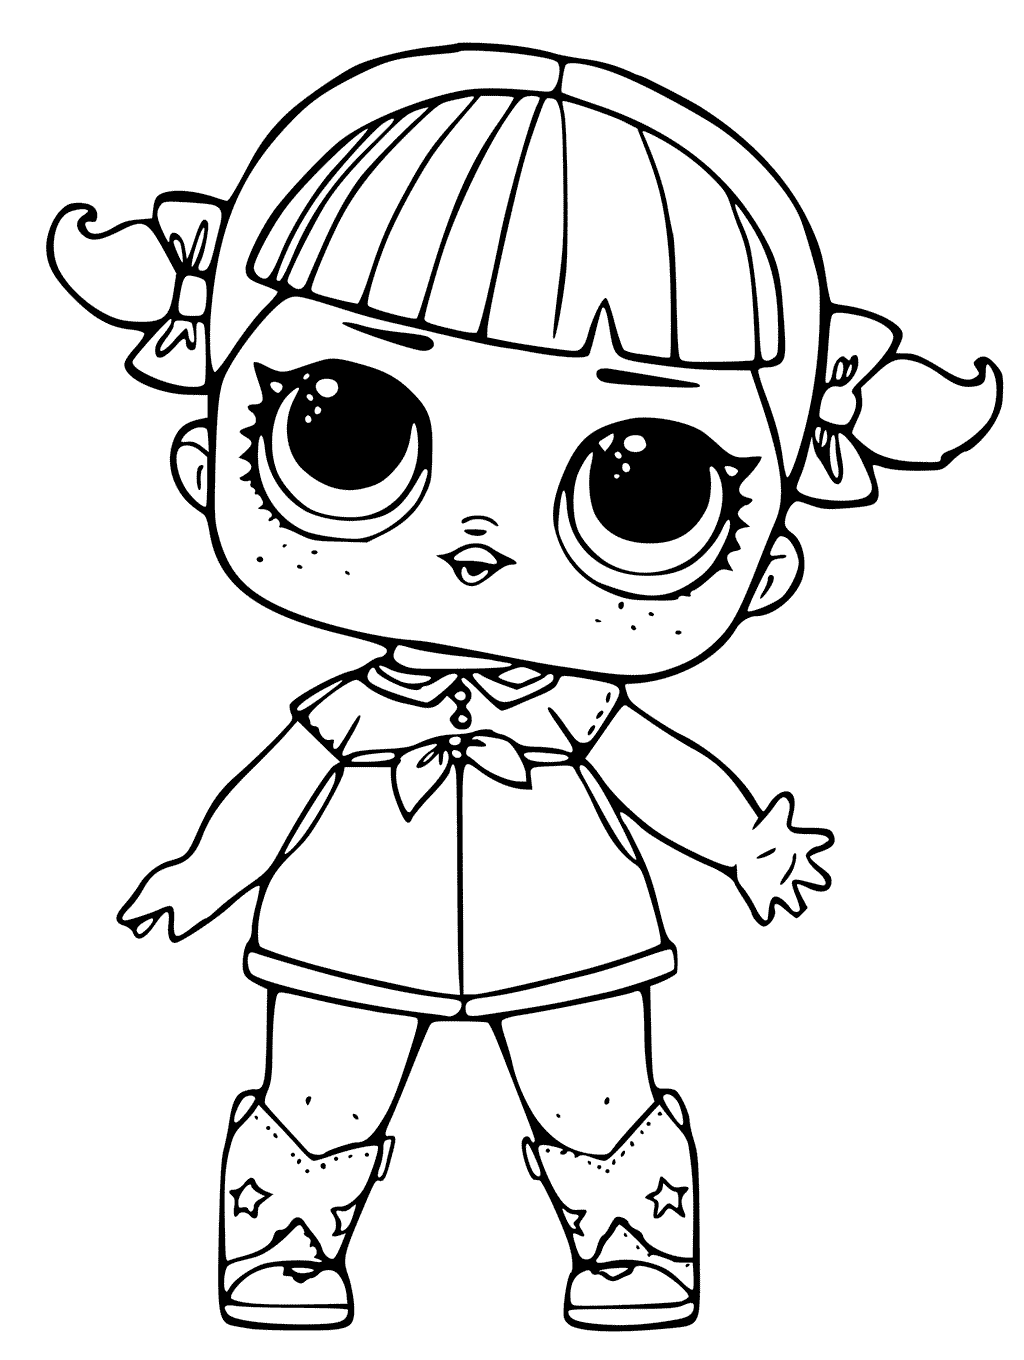 Lol Surprise Doll Coloring Pages Cherry Lol Dolls Coloring Pages Cheer Captain